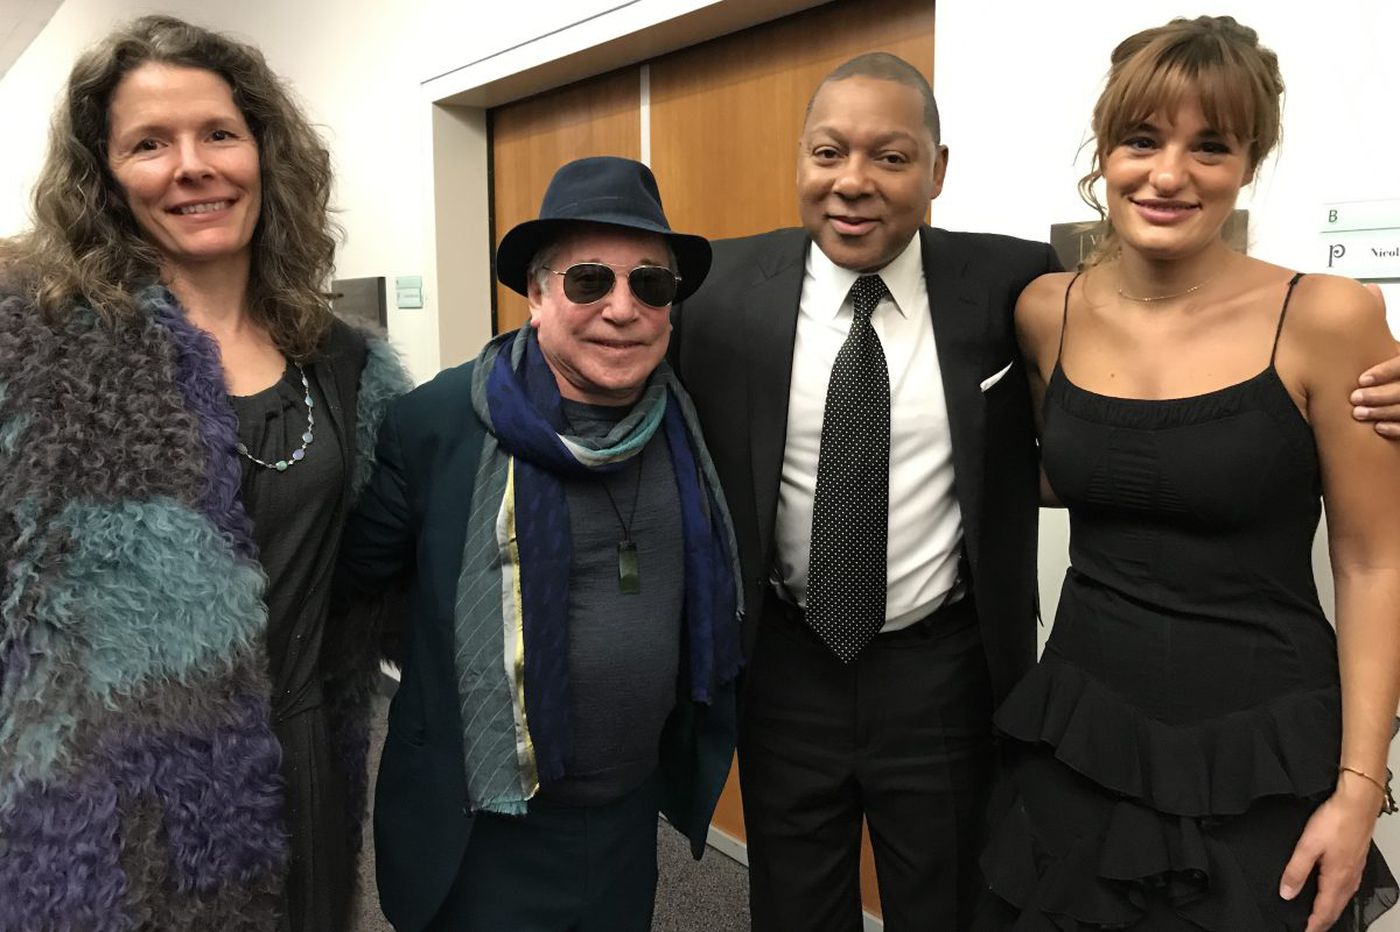 Paul Simon and Edie Brickell drop by Philadelphia Orchestra for Wynton Marsalis